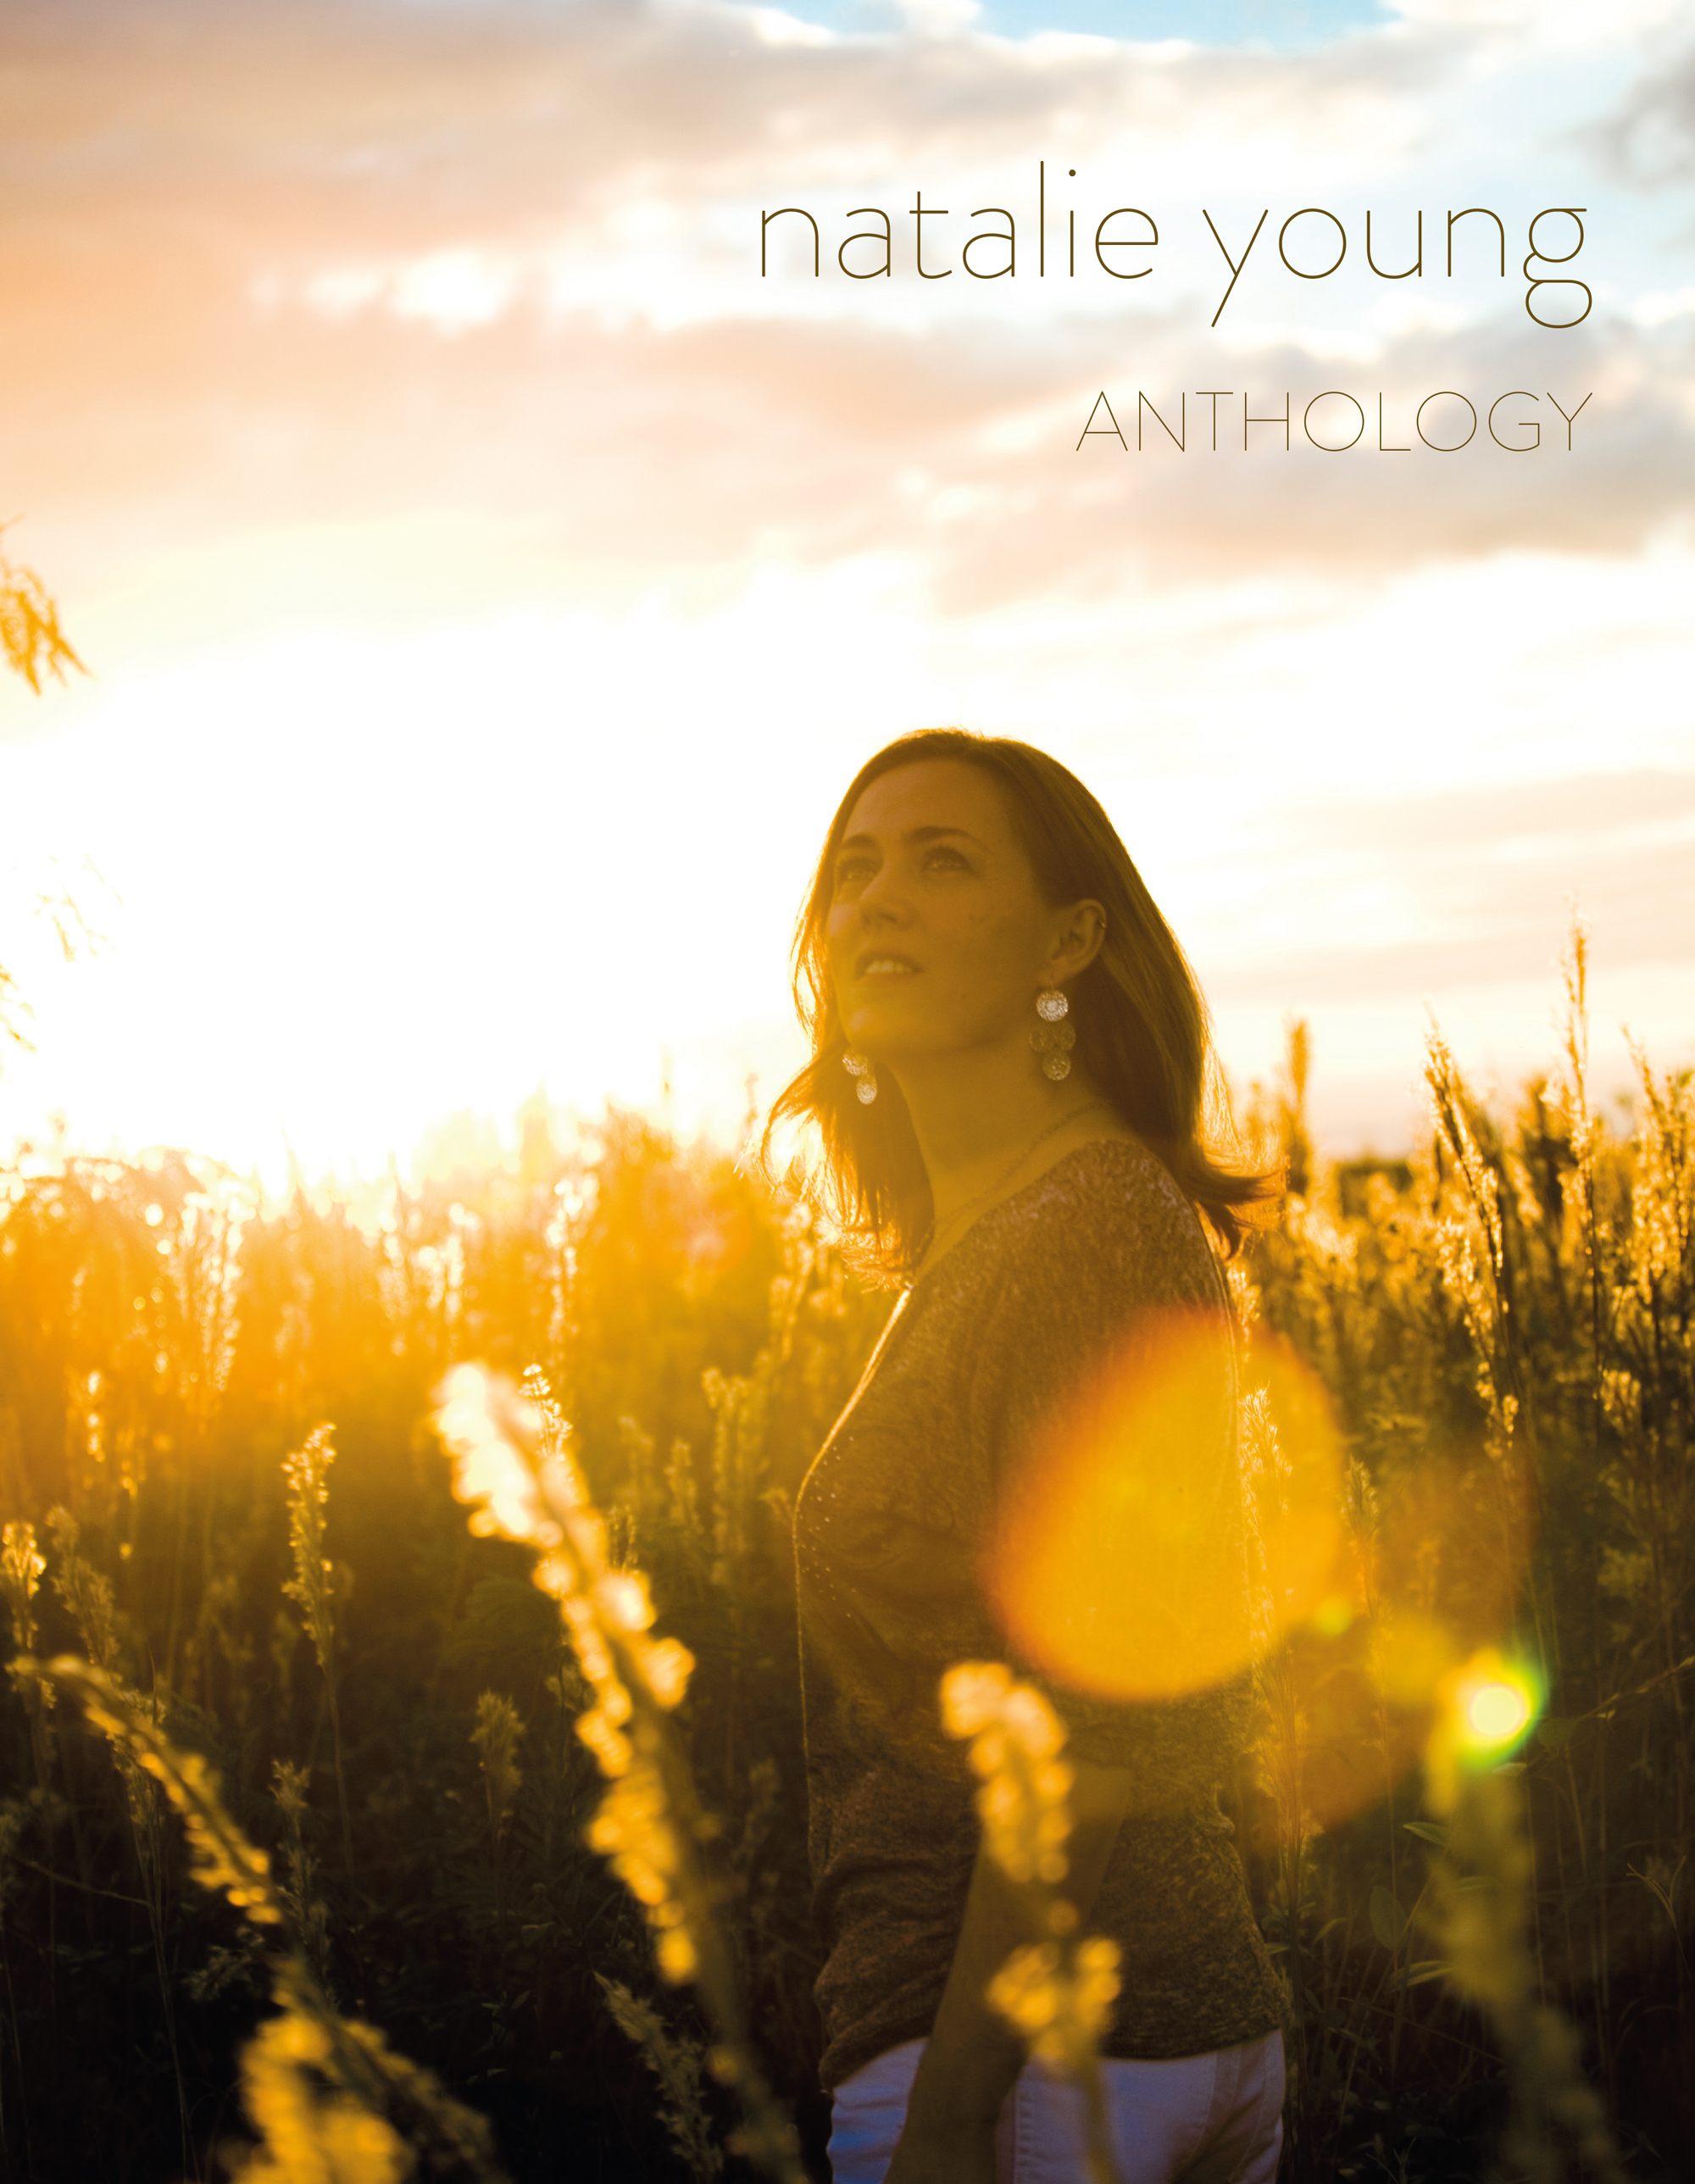 6Natalie-Young-Anthology-cover-6-9-15.jpg